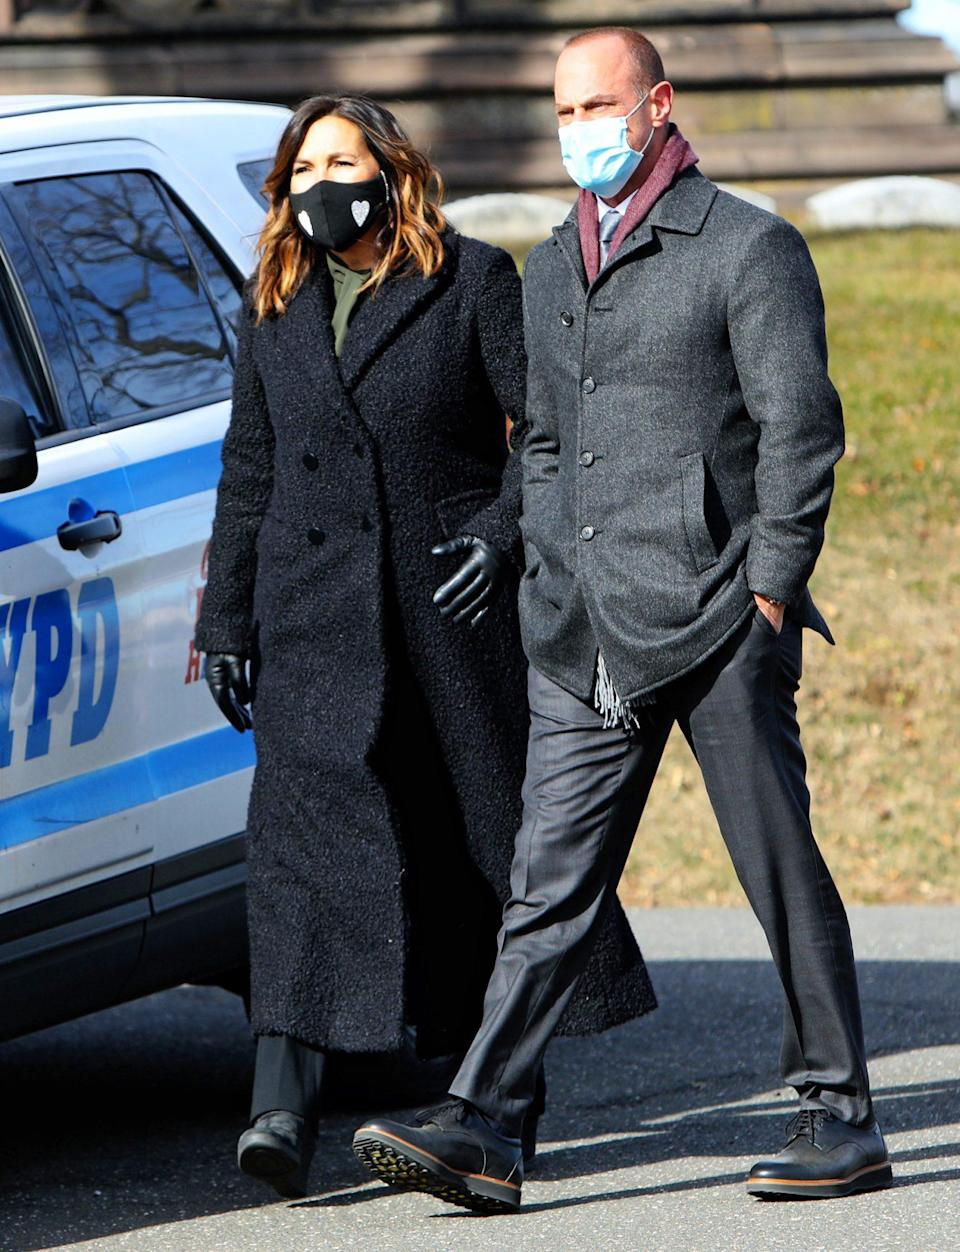 <p>Mariska Hargitay and Christopher Meloni reunite on the set of <em>Law and Order: SVU</em> on Monday in N.Y.C.</p>